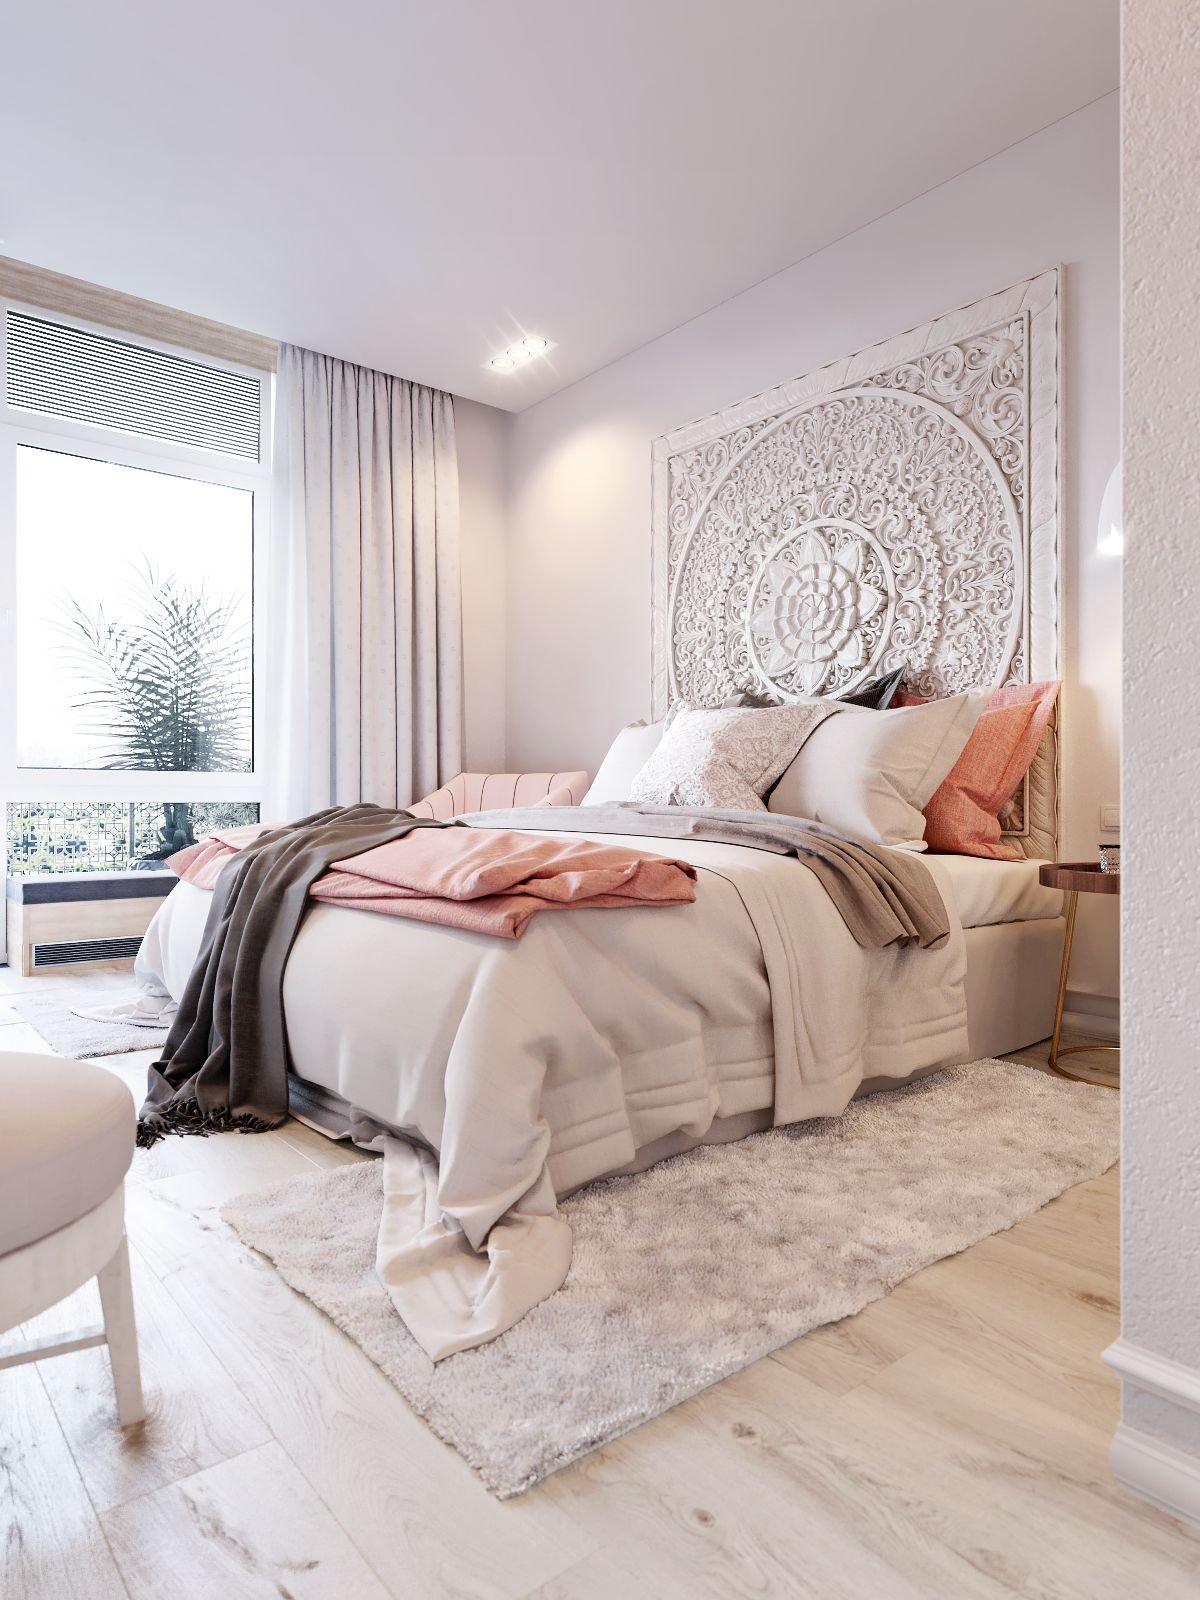 Pin by paloma sánchez on shabby pinterest bedrooms room and